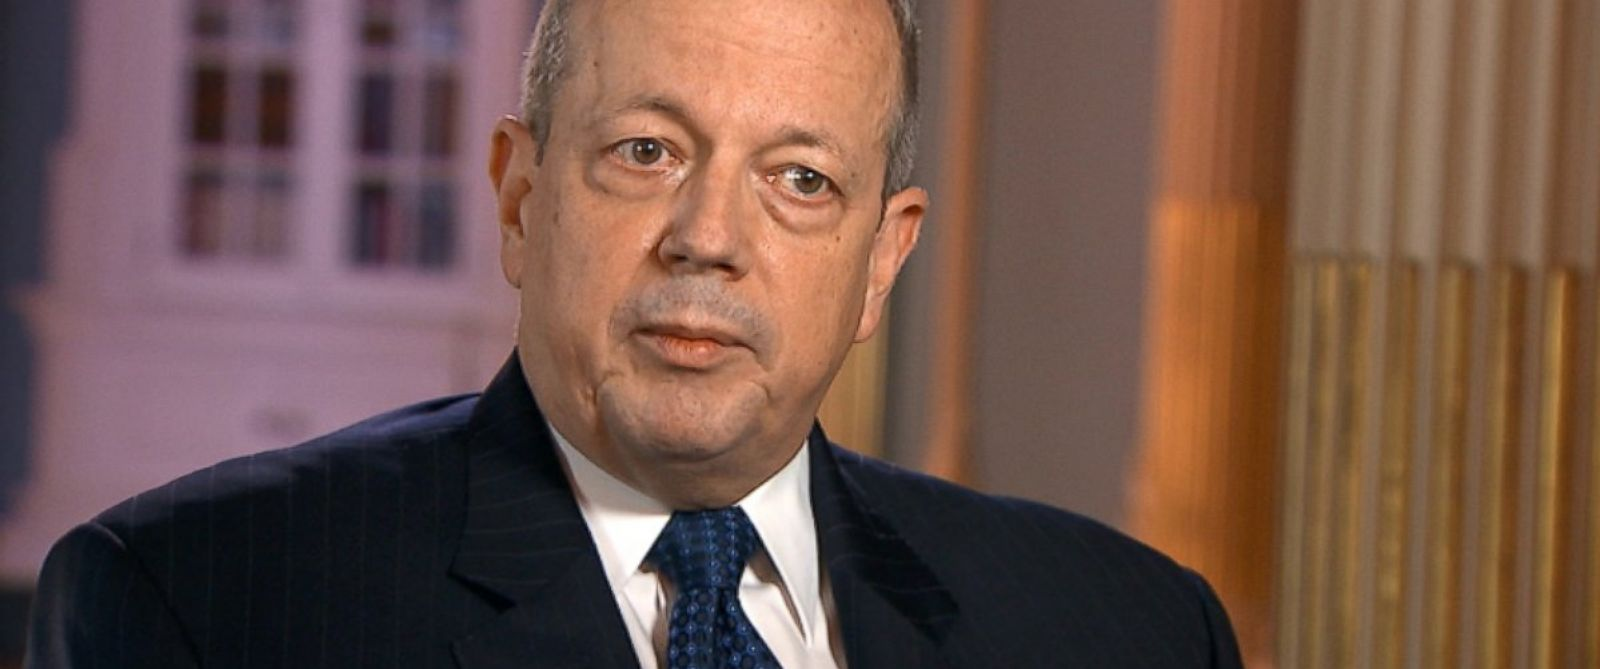 General John Allen (ret.) Says Only Hillary Clinton Understands How to Keep Us Safe